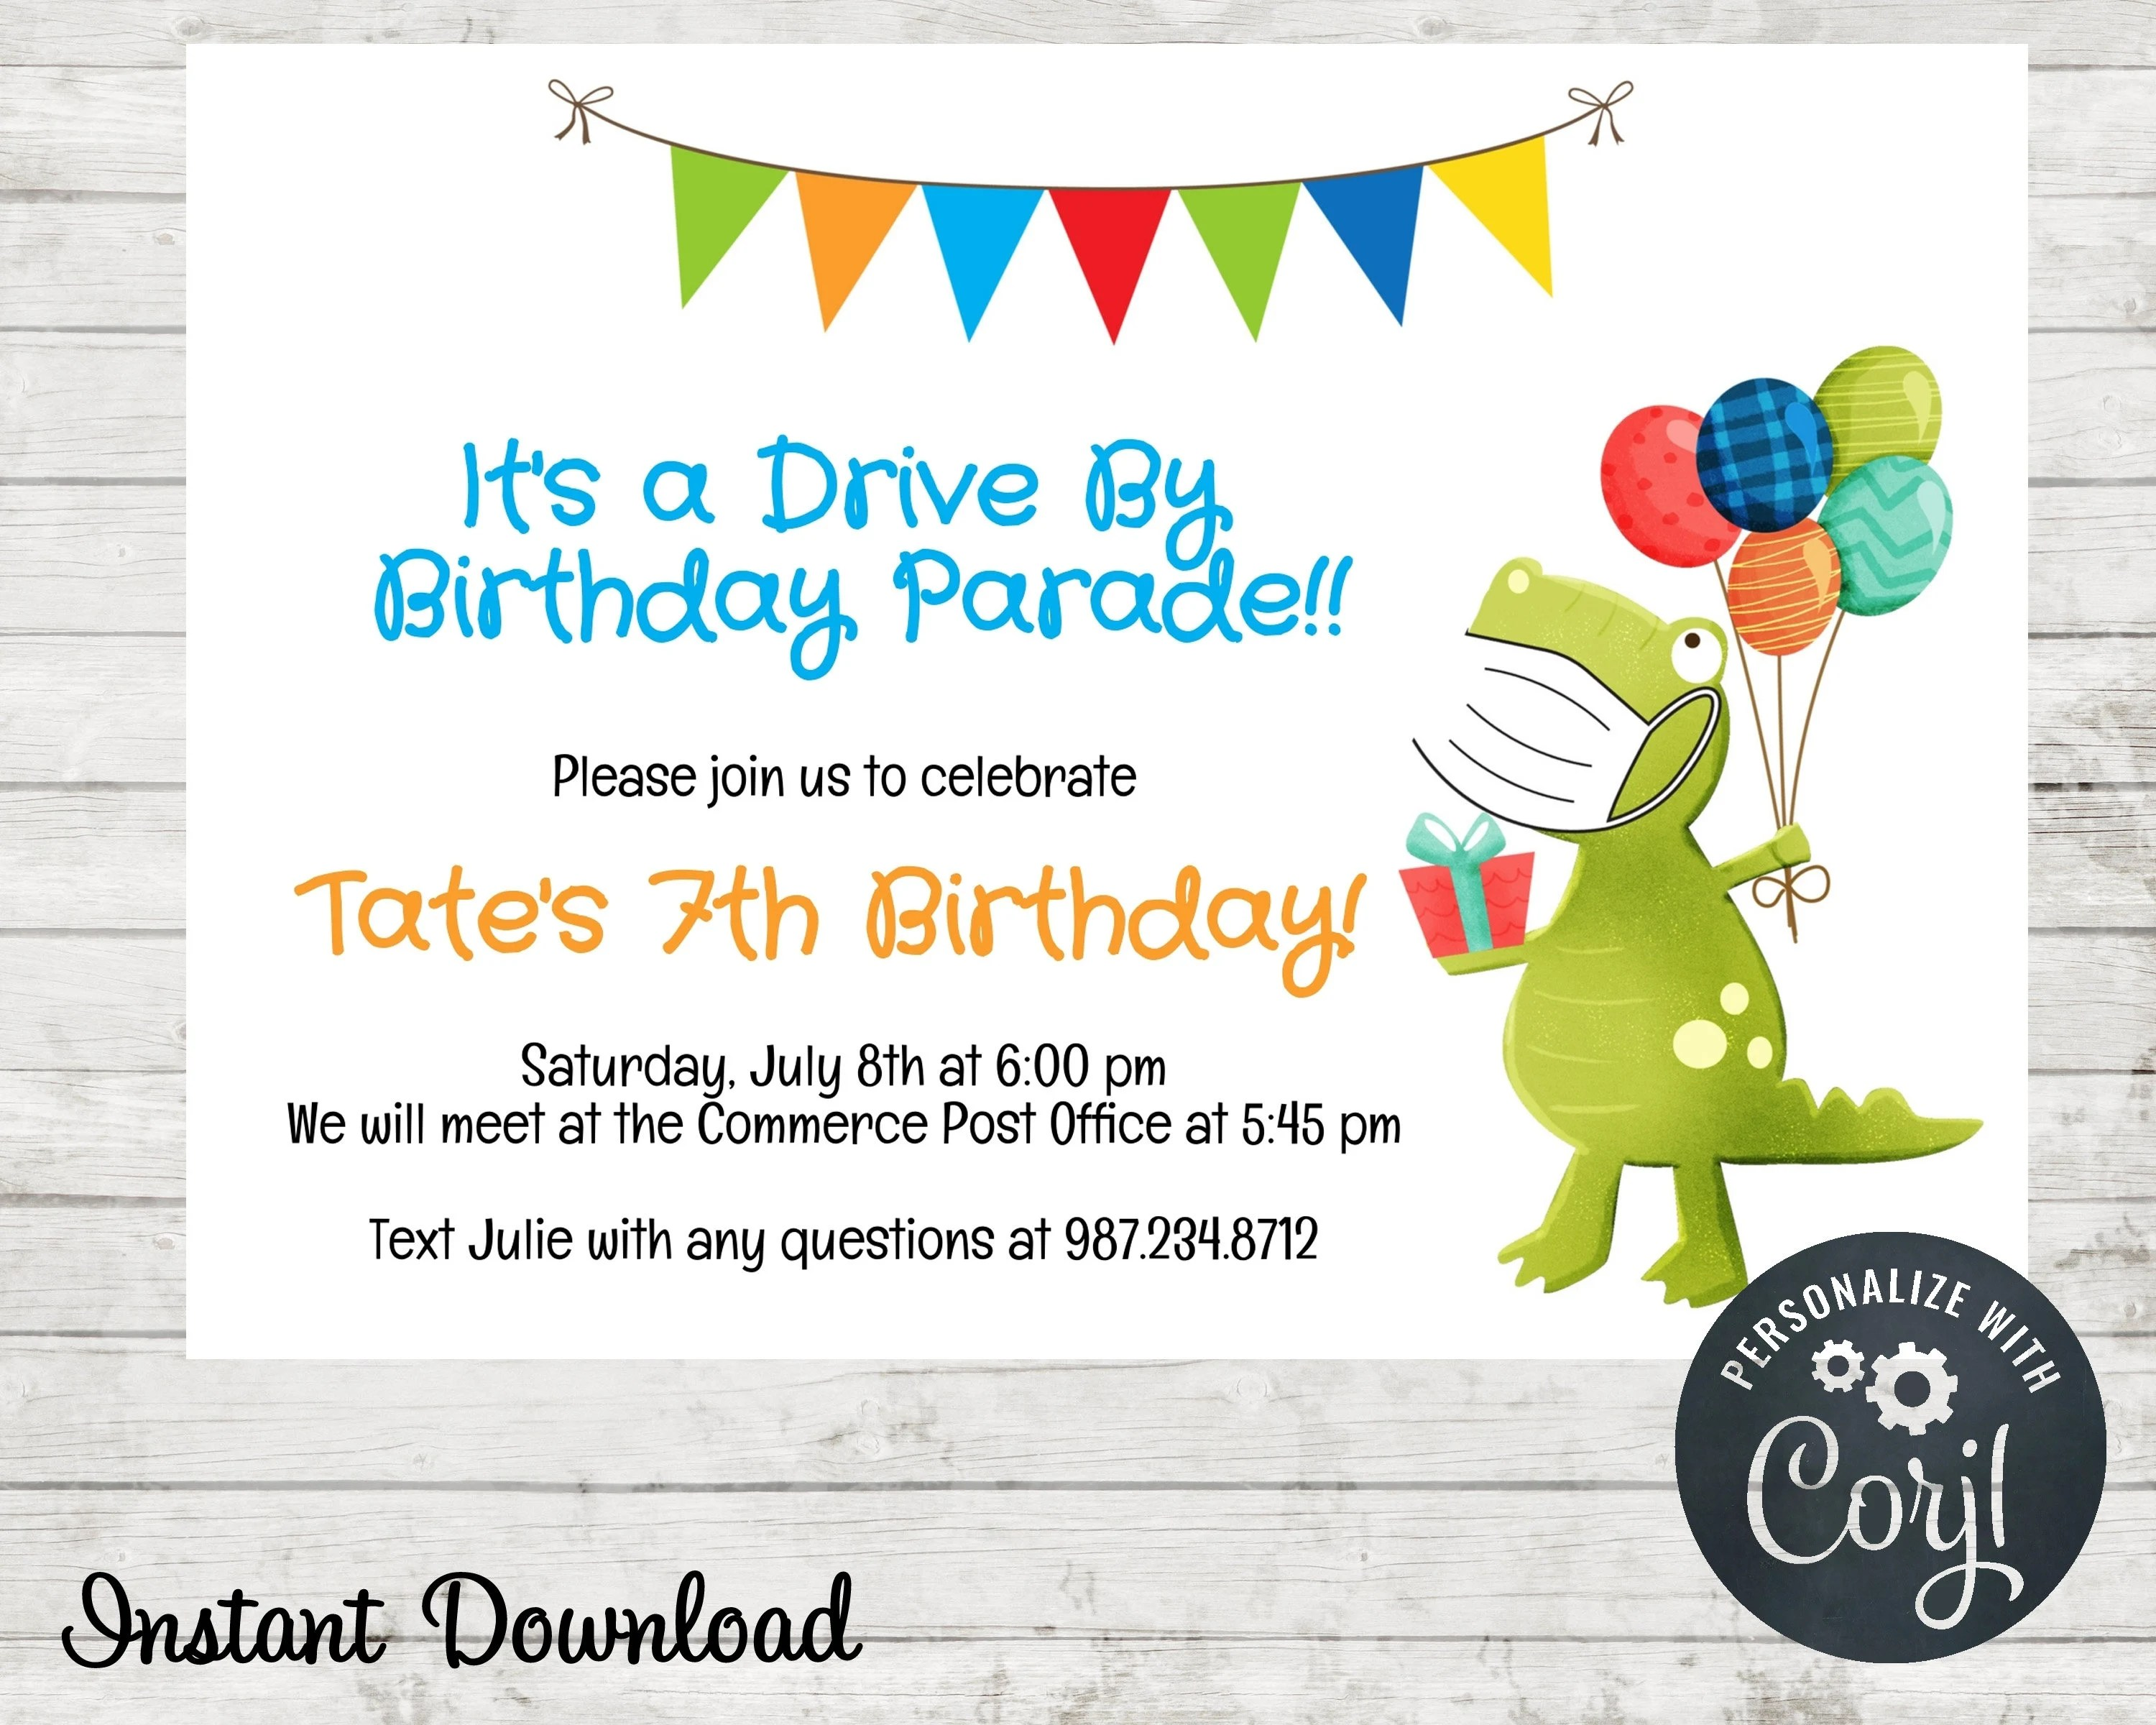 dinosaur drive by birthday parade